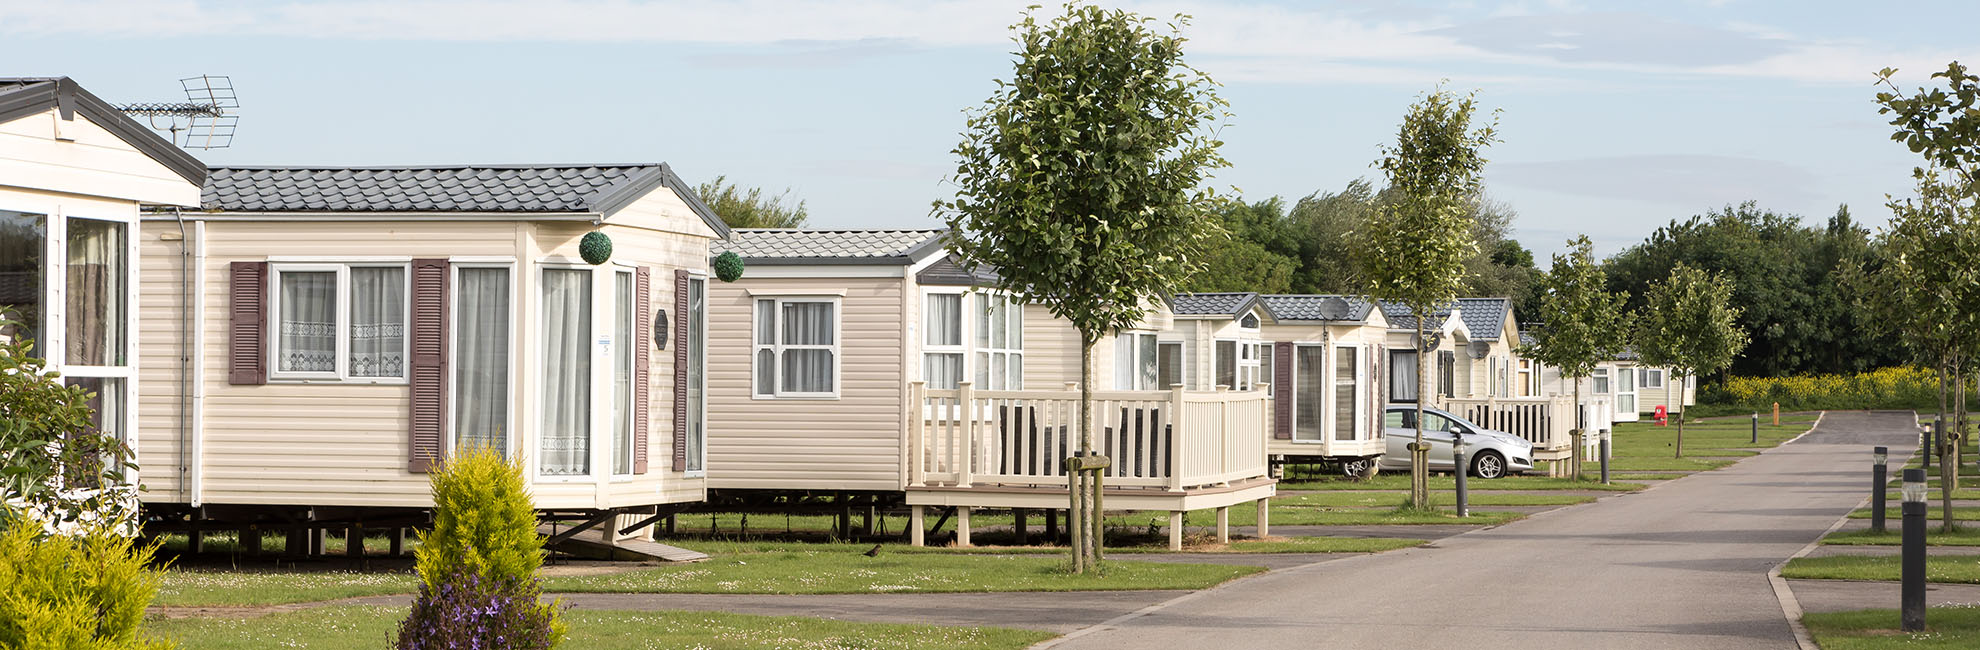 Family walking through Skipsea Holiday Park